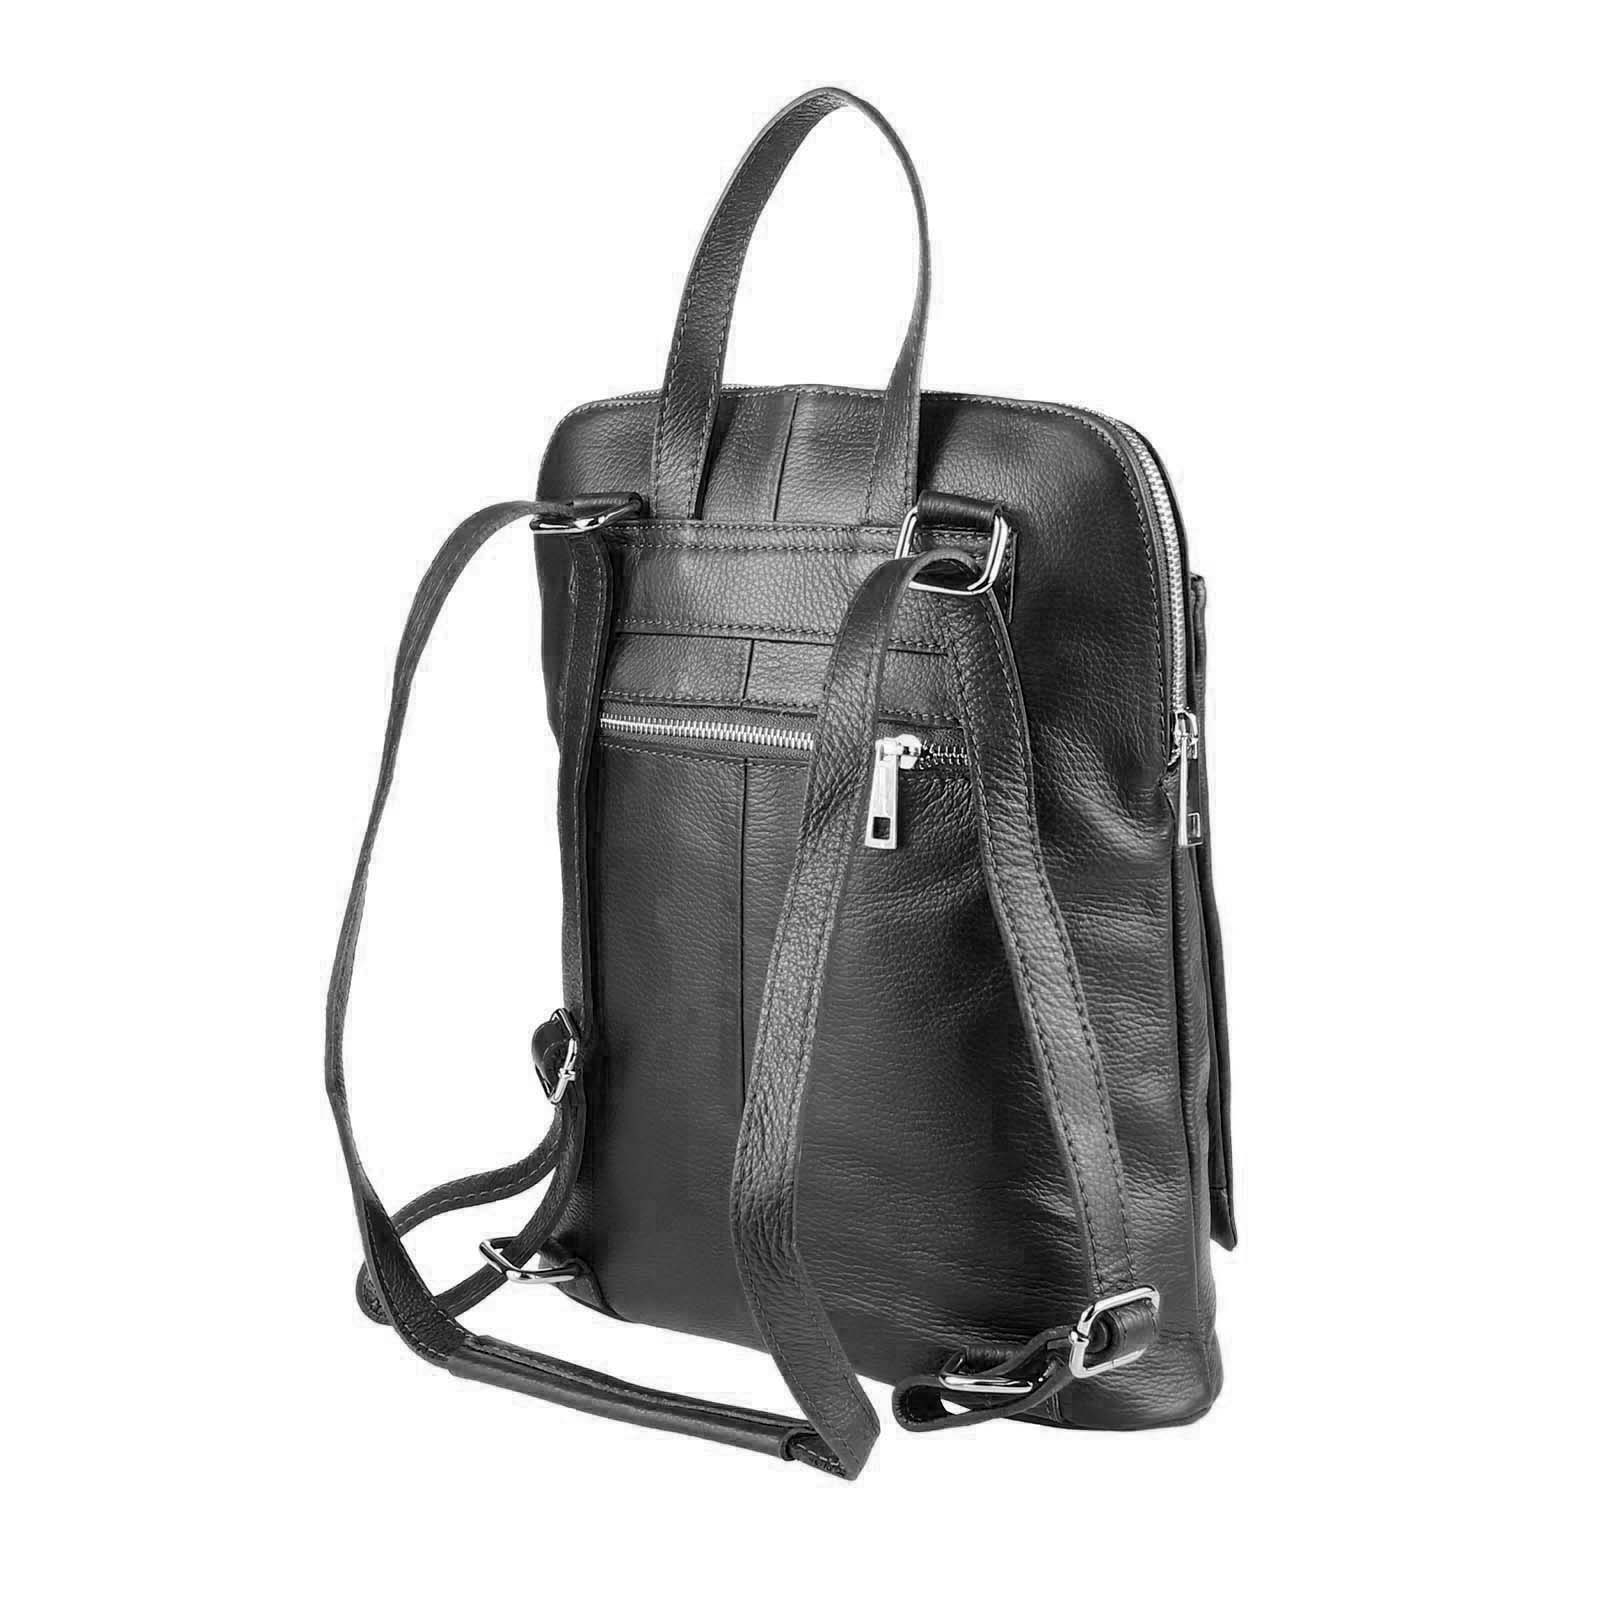 ITALy-DAMEN-LEDER-Reise-RUCKSACK-SchulterTasche-Shopper-Backpack-Ledertasche-BAG Indexbild 14